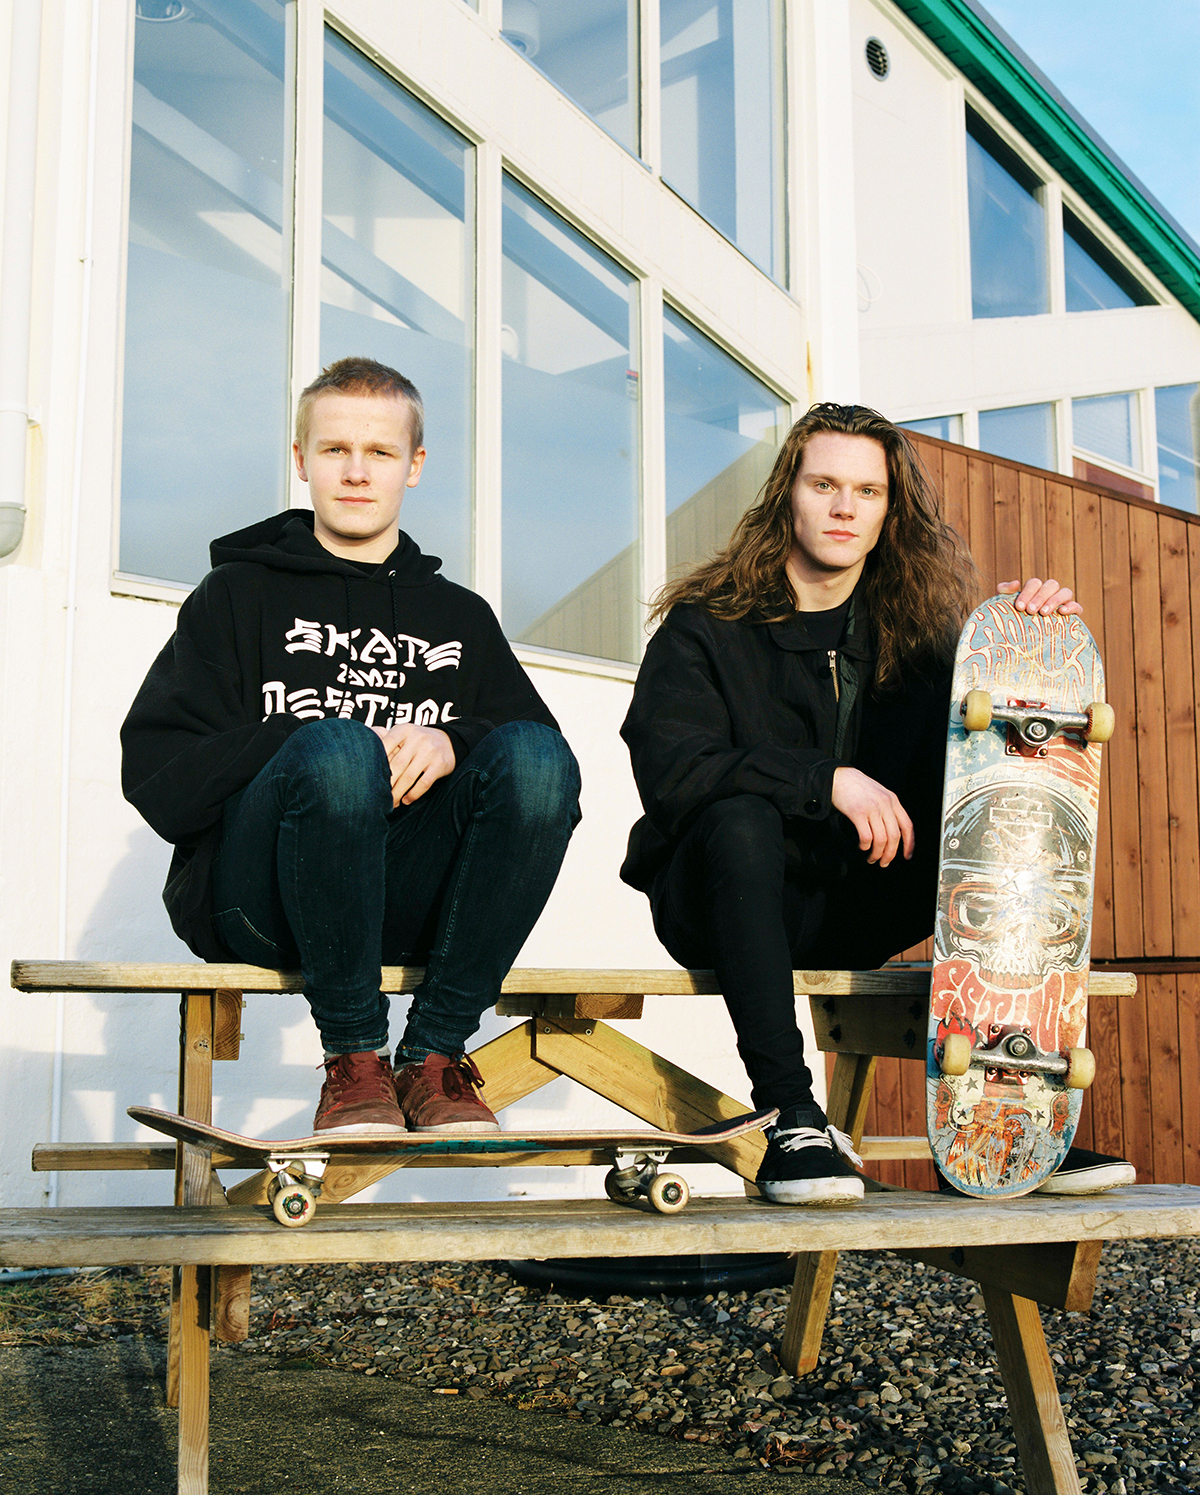 "I met Stefán and Bjartur in Neskaupstaður when I saw them skateboarding outside of the gas station. ""There aren't many people who skateboard here, so we got into it to make things happen for ourselves,"" they said. They both work on pushing their limit to land new tricks."